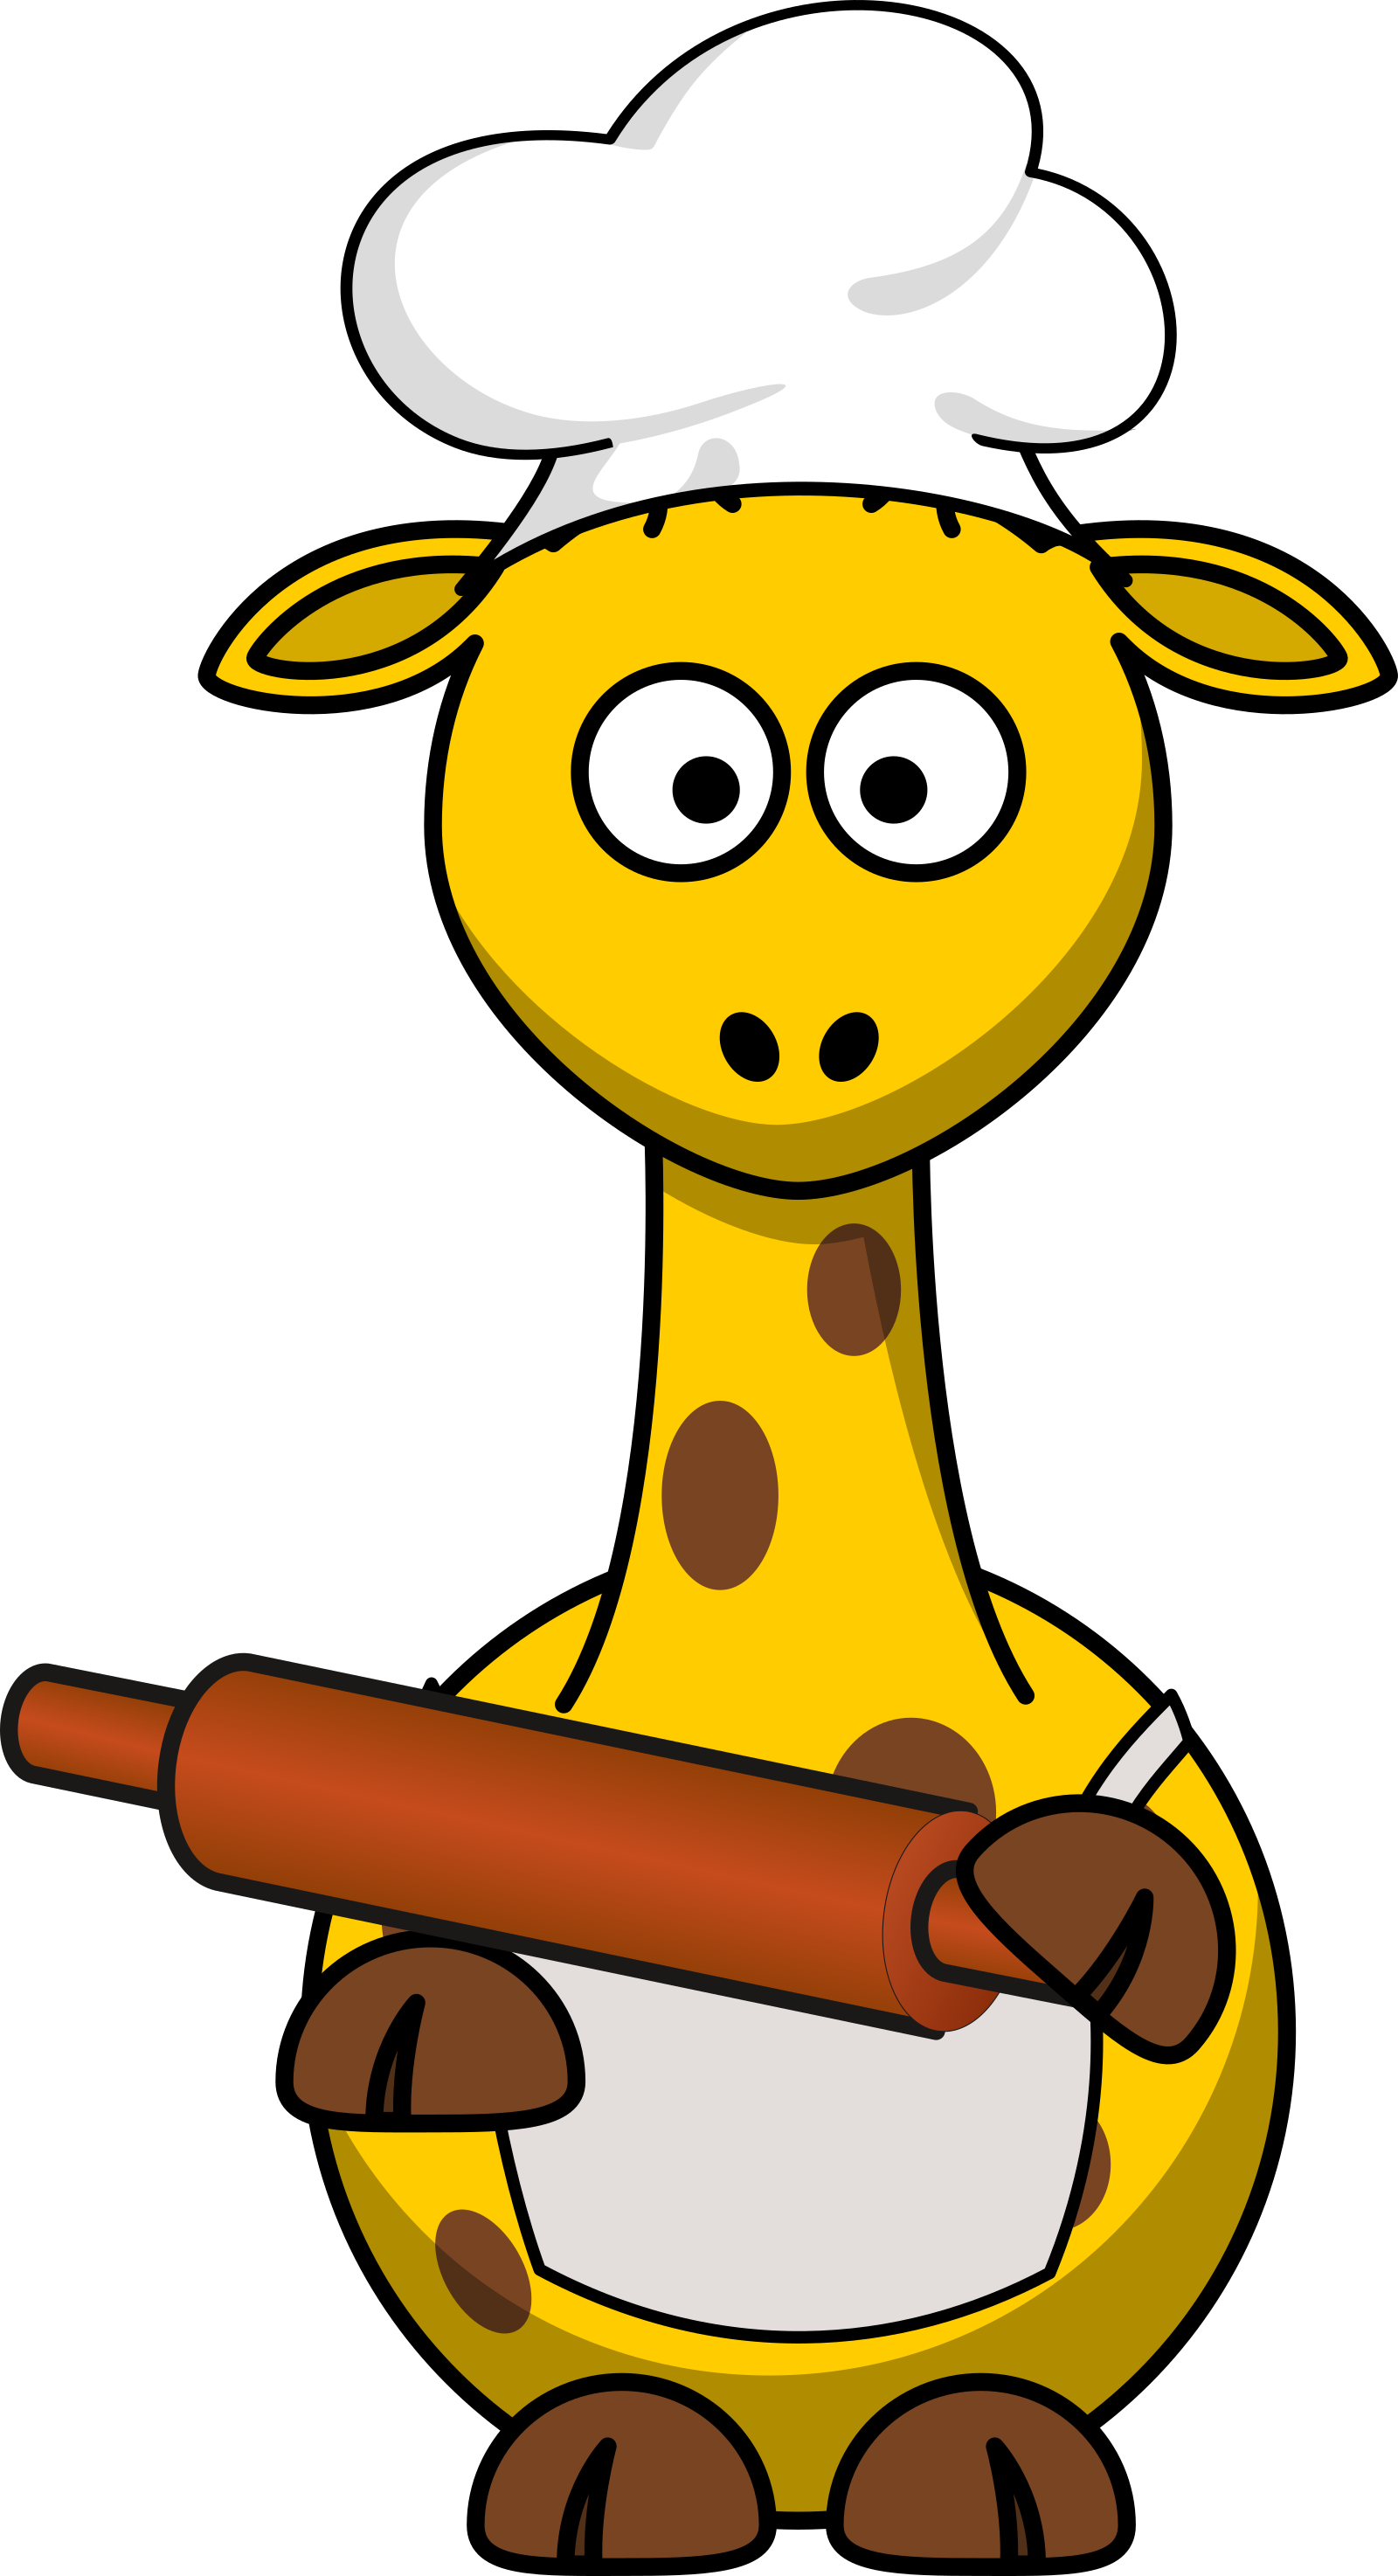 Cartoon Giraffe SVG Clip arts